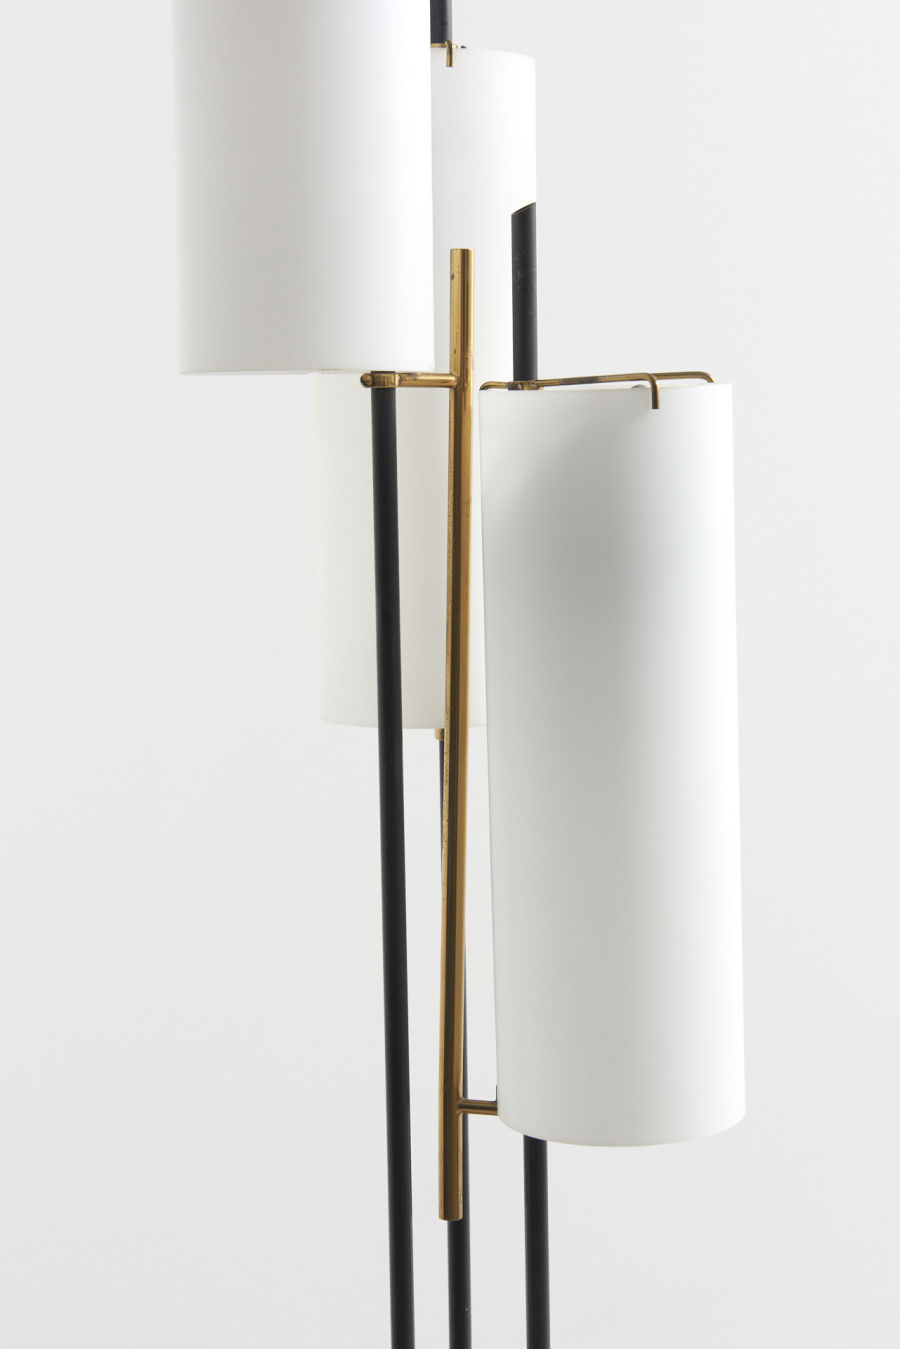 modestfurniture-vintage-1893-floor-lamp-stilnovo-marble-foot03